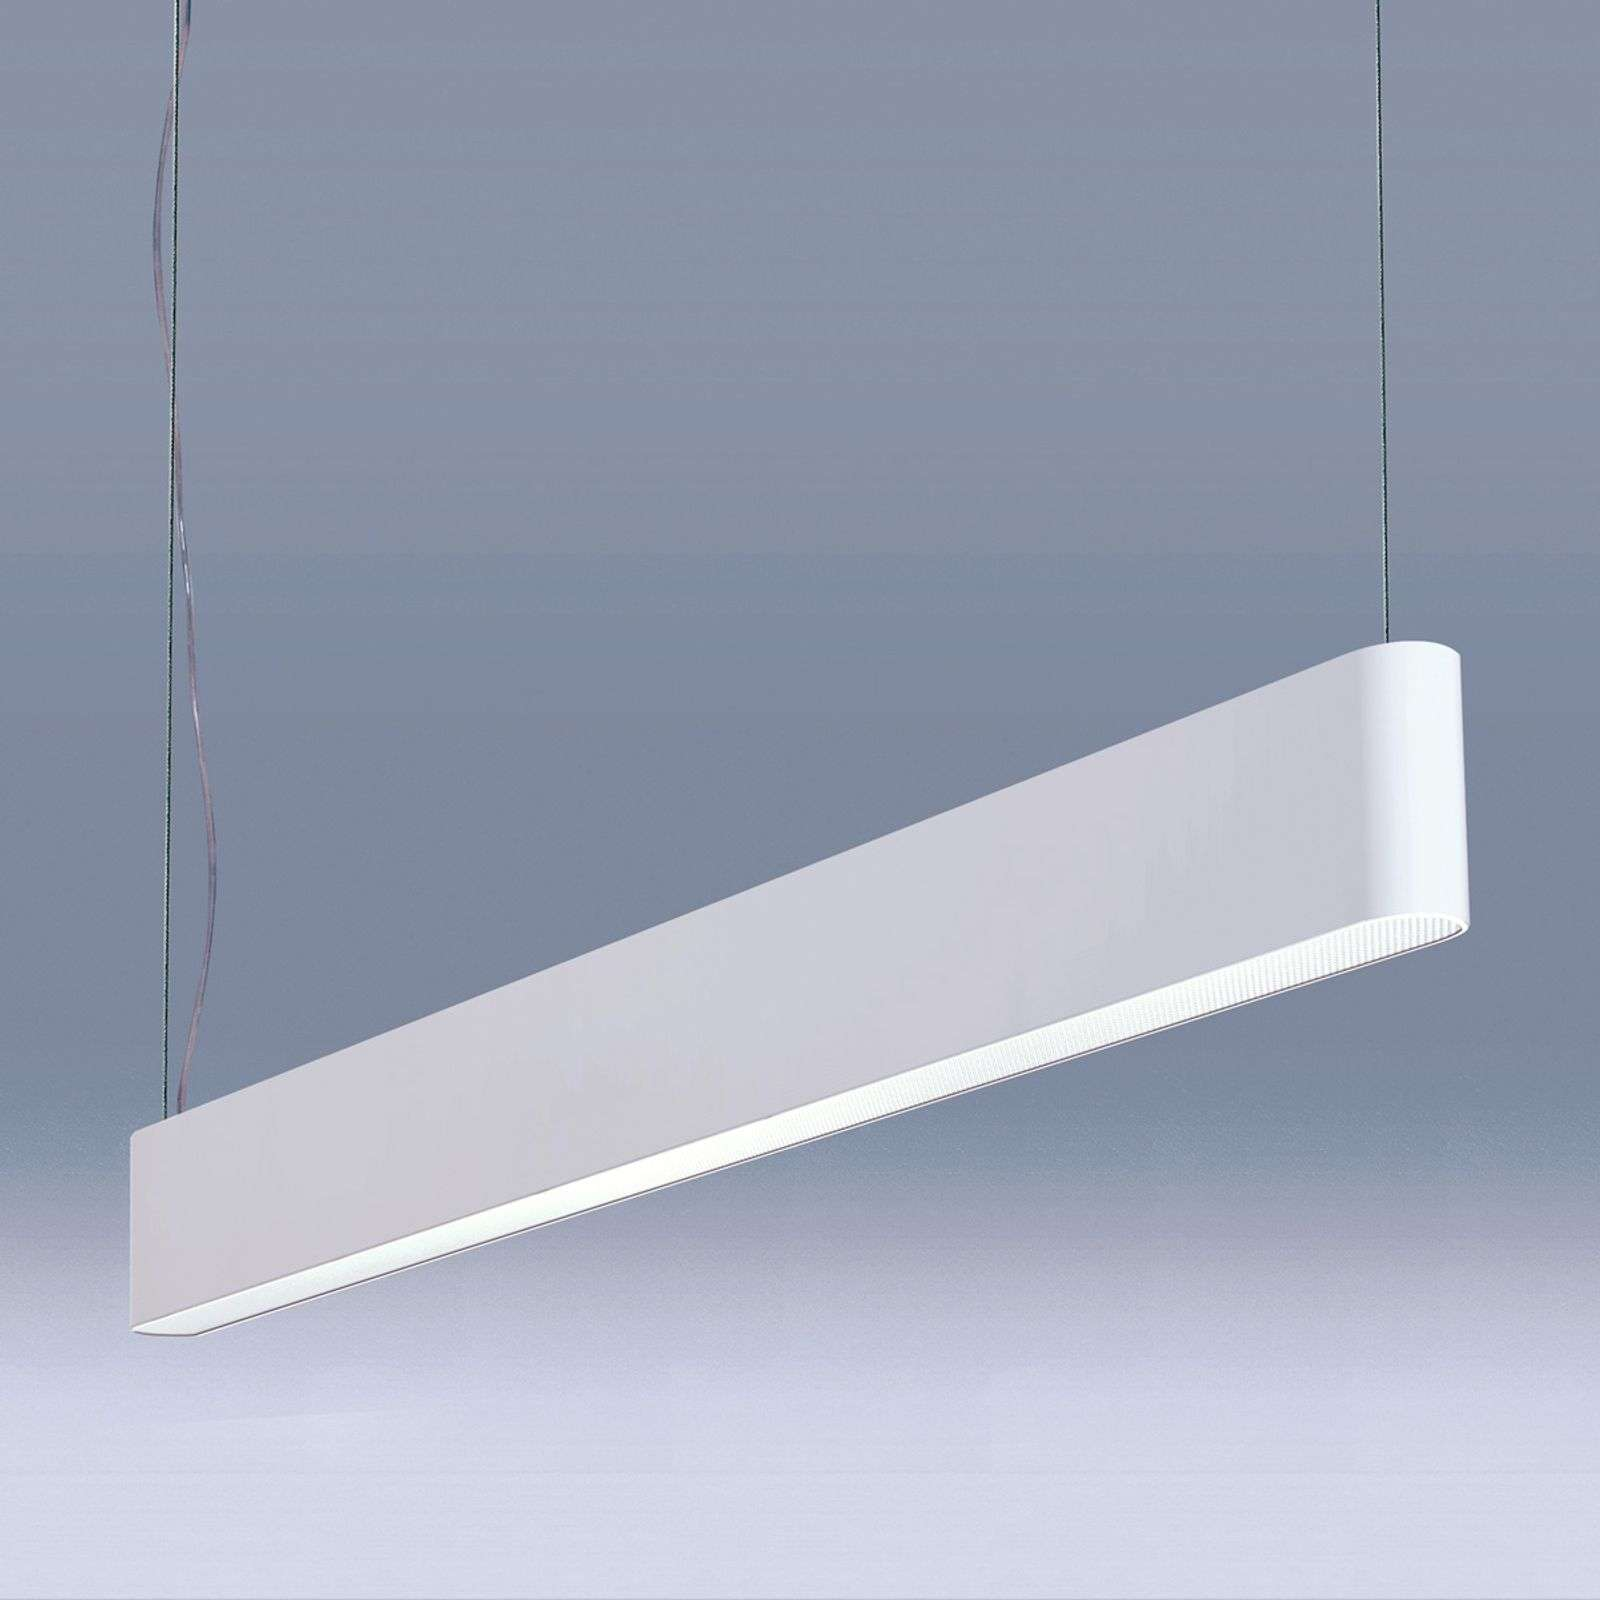 Suspension LED Caleo-P4 blanche - 118,2 cm 62 W